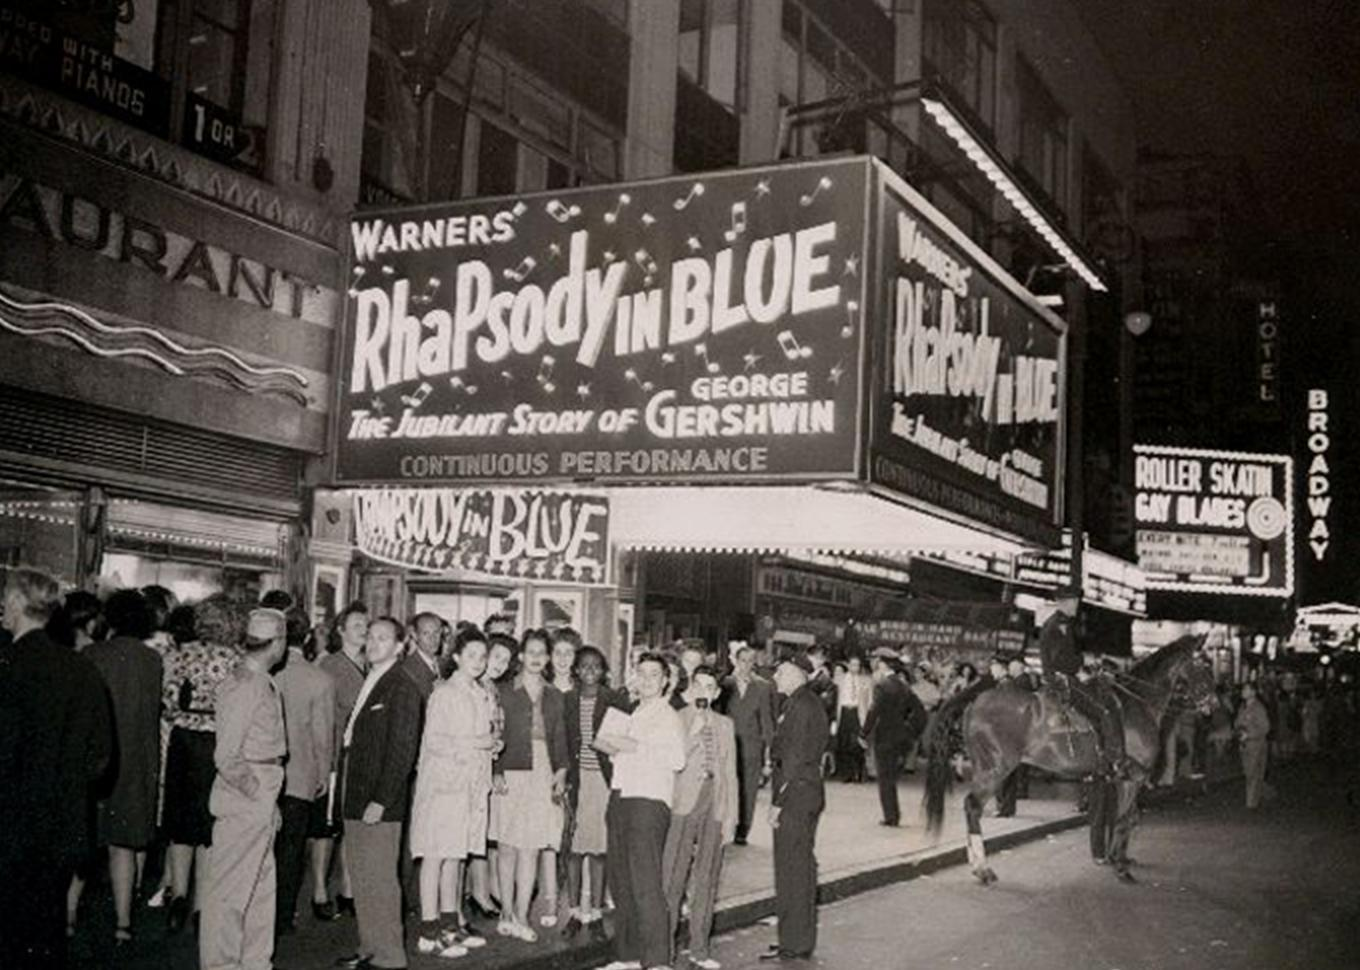 Rhapsody in Blue at 95, The Aeolian Hall Concert of 1924